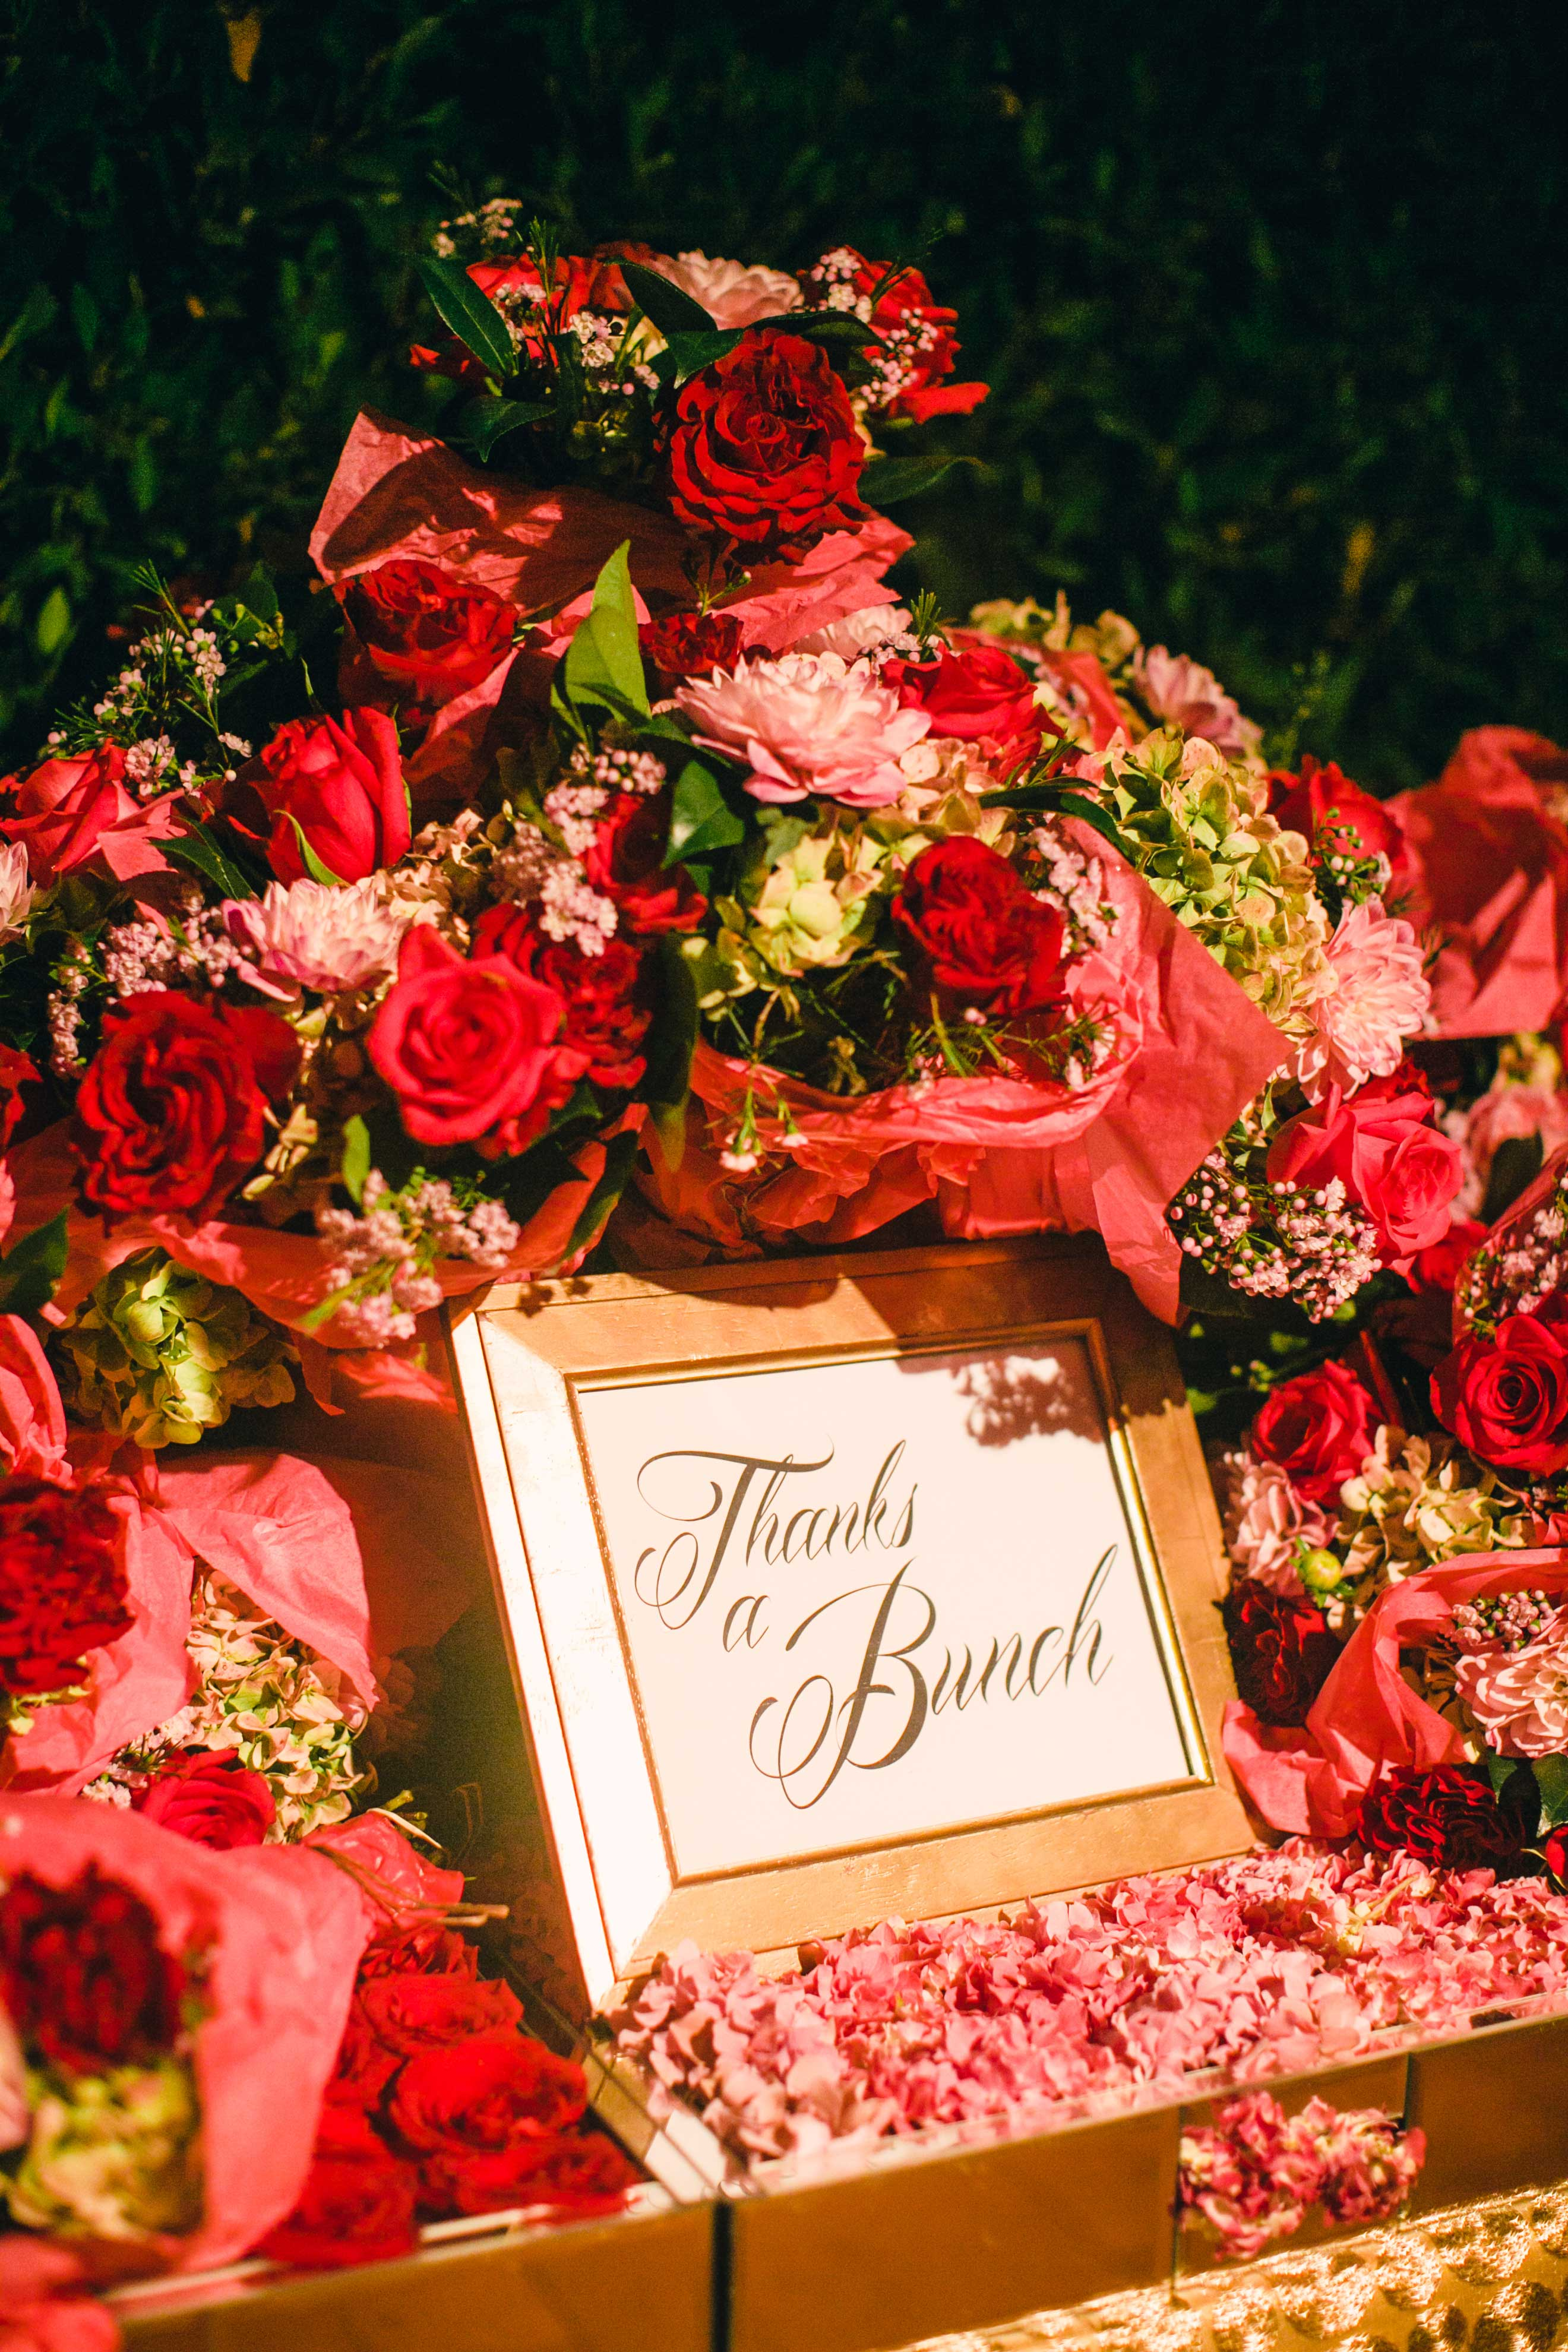 wedding favors pink and red flower bouquets thanks a bunch sign